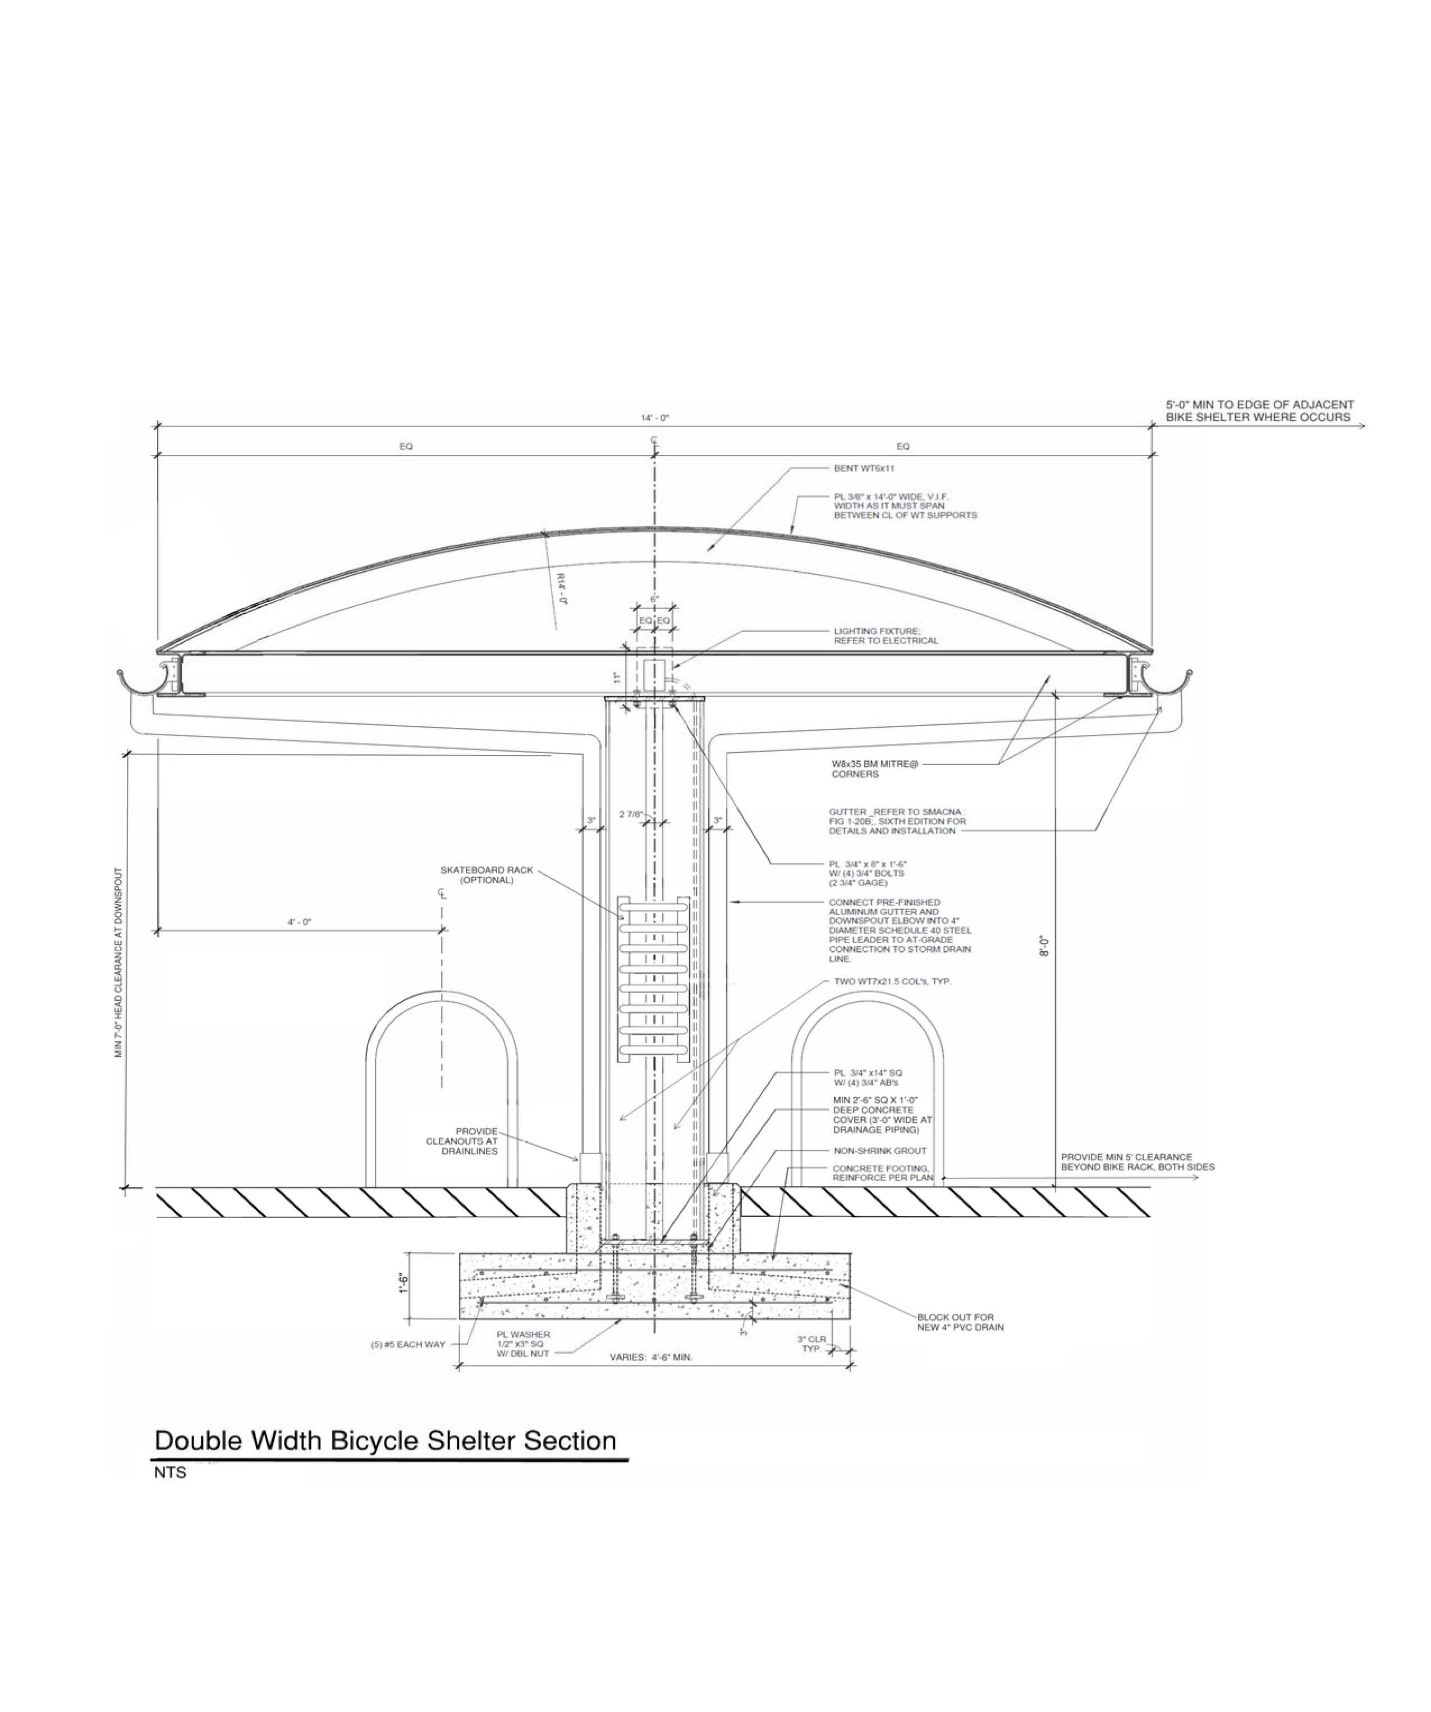 Diagram 32 33 00D Double Bike Shelter Section